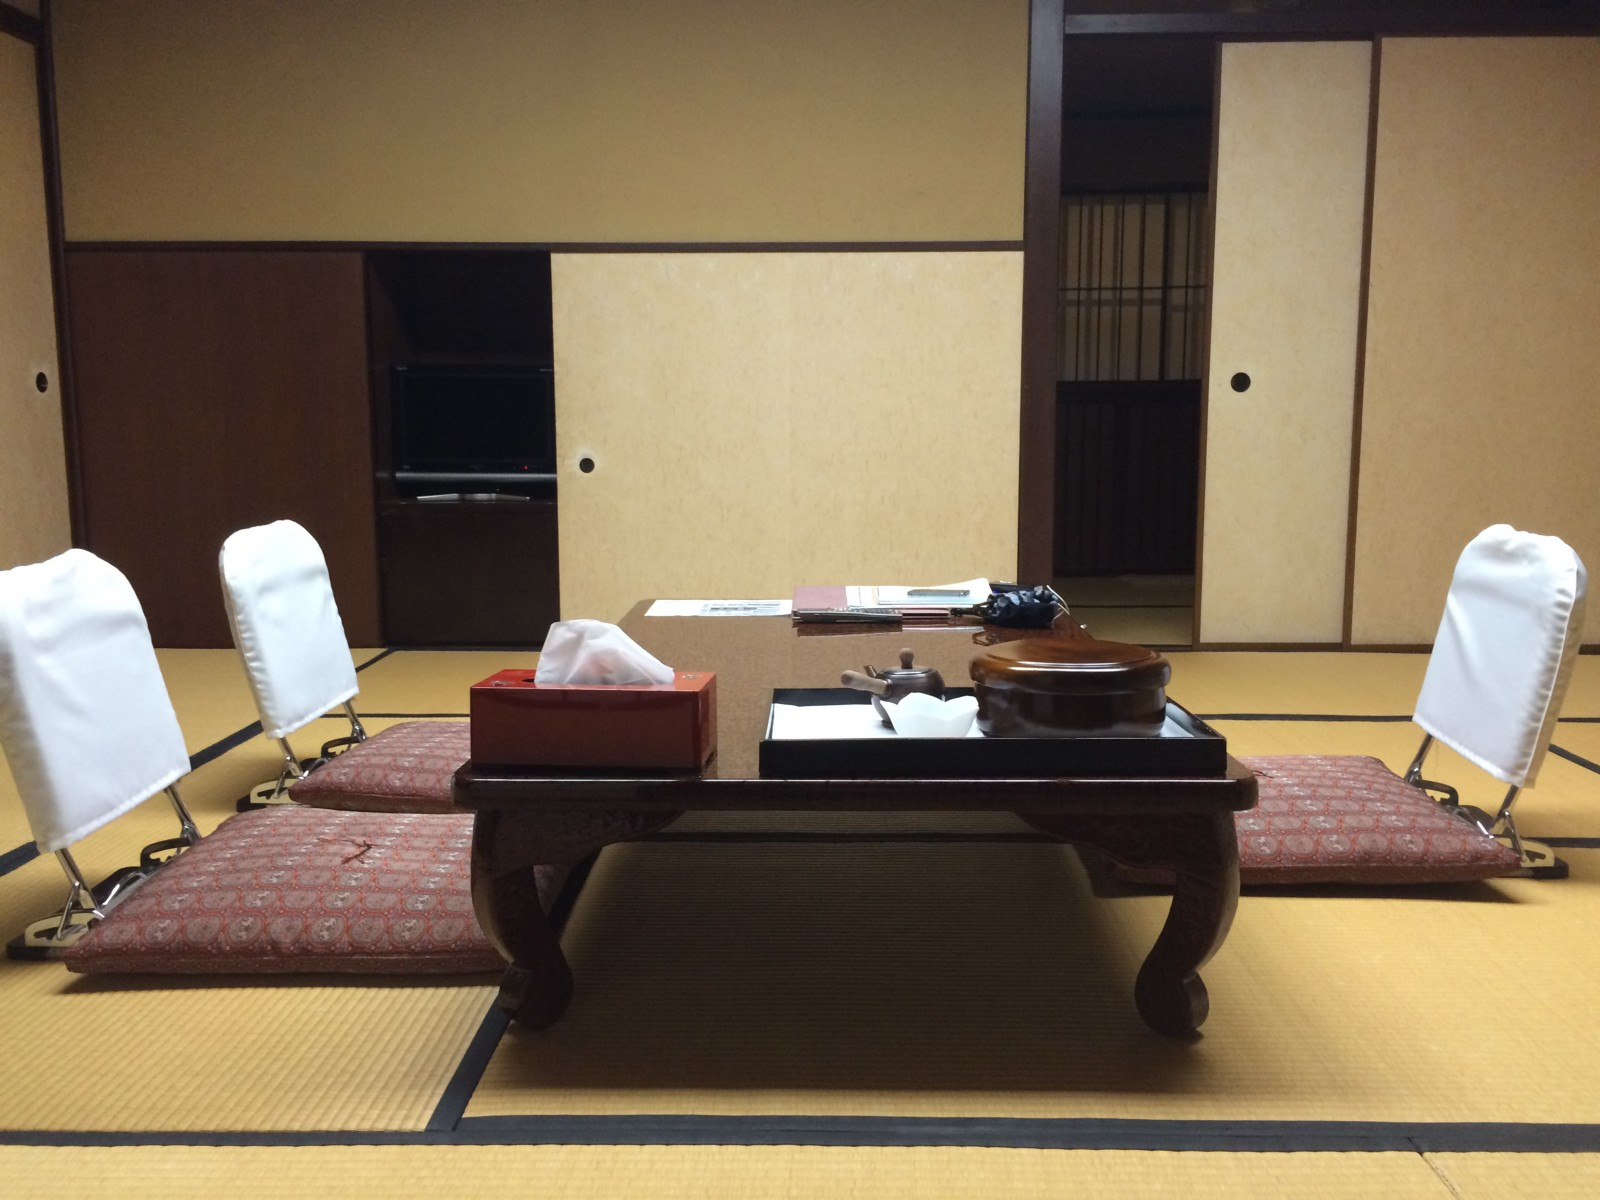 more than just a place to sleep ryokans are an opportunity to experience traditional japanese hospitality elements such as tatami floors